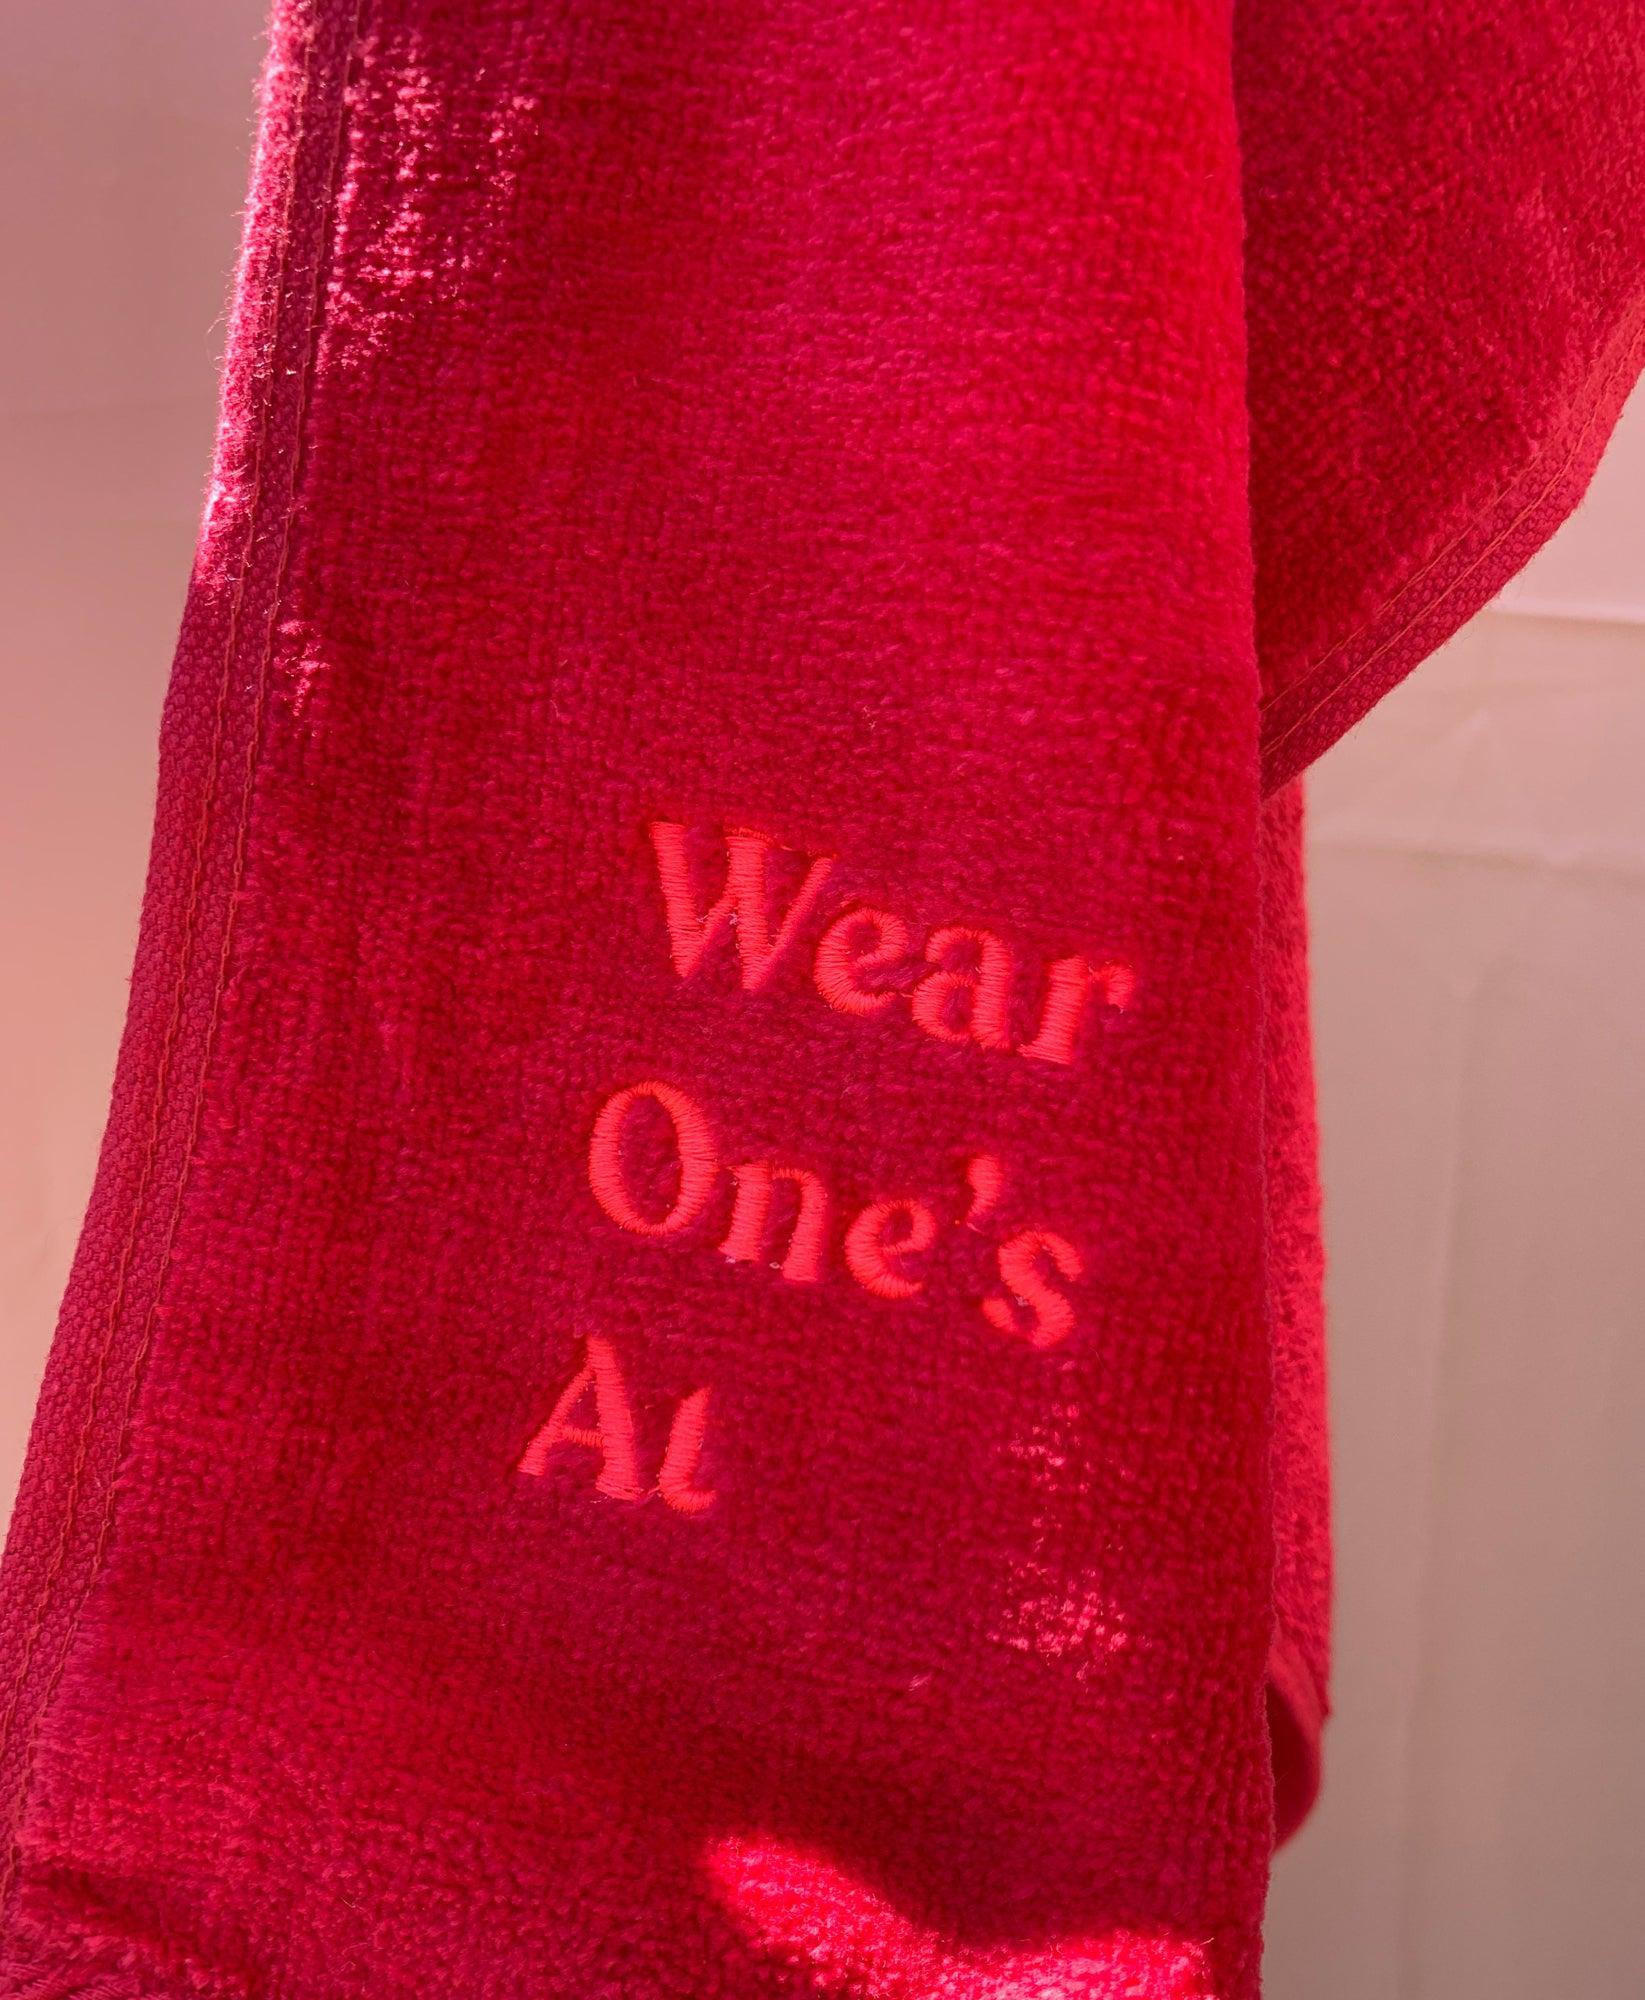 Wear One's At Logo Sport Towel in Cherry Red Detail View